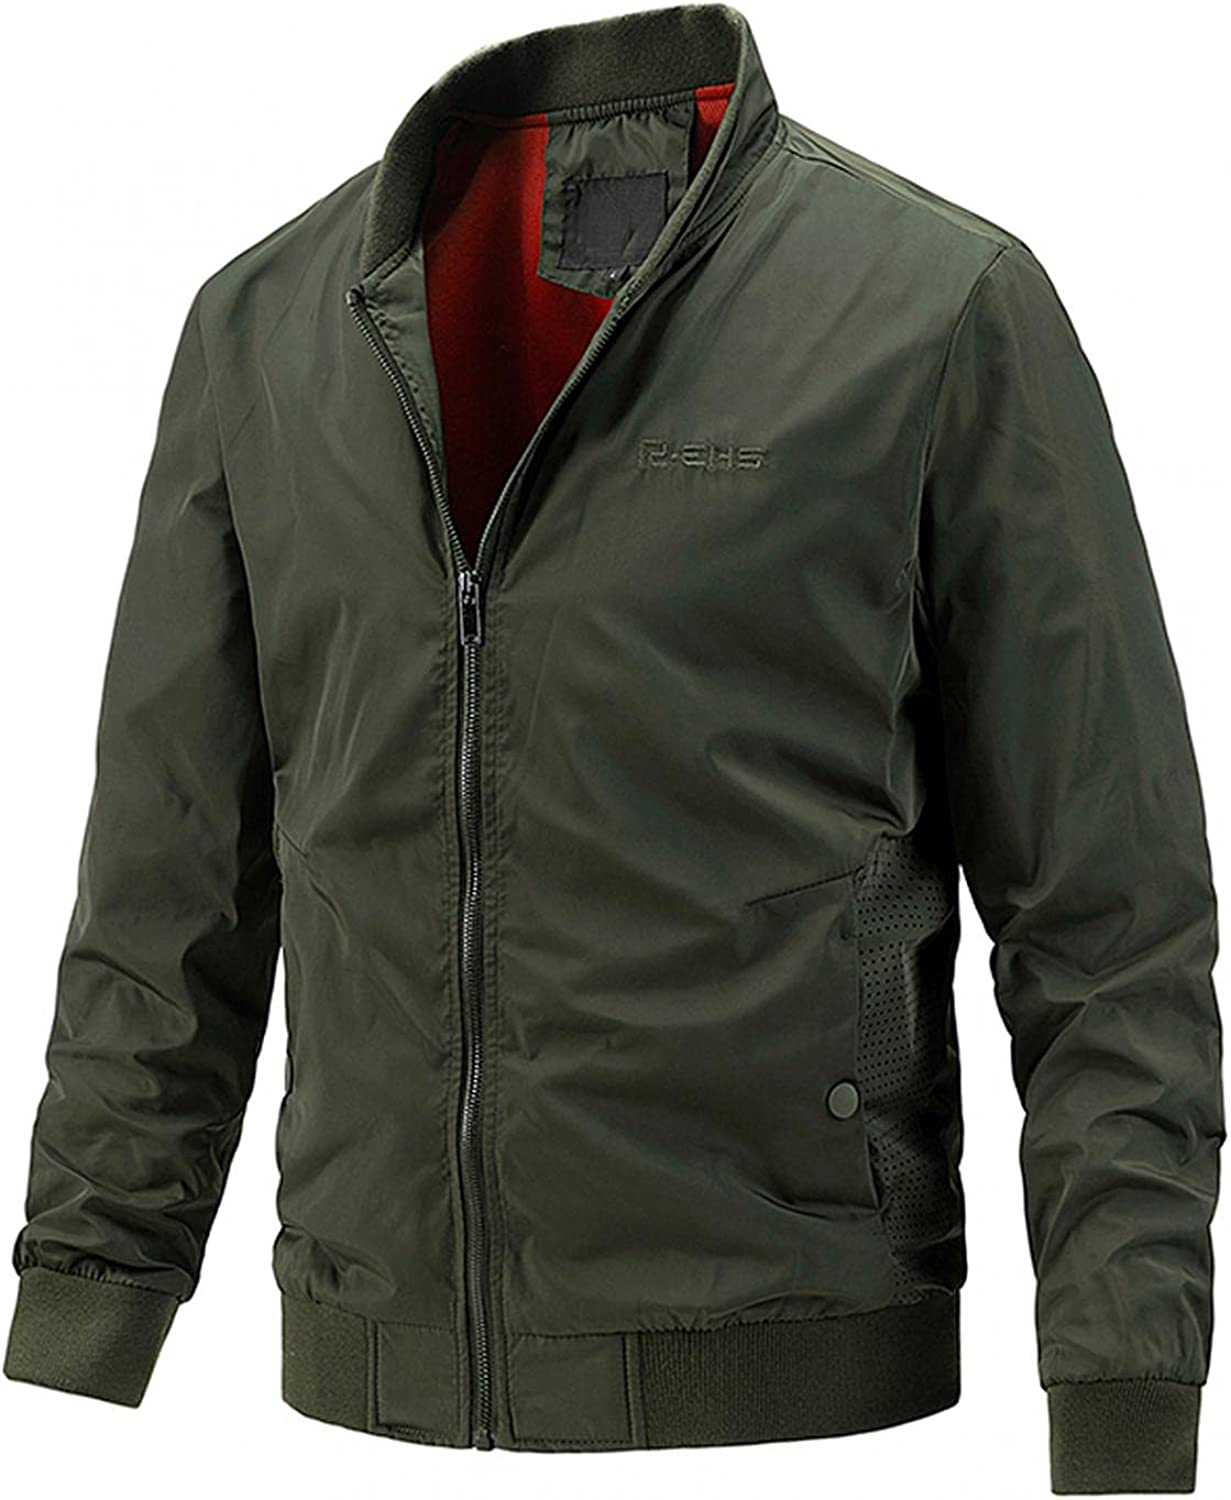 Men's Lightweight Cotton Military Jackets Autumn&Winter Casual Outdoor Adventure Outerwear Coats with Pockets